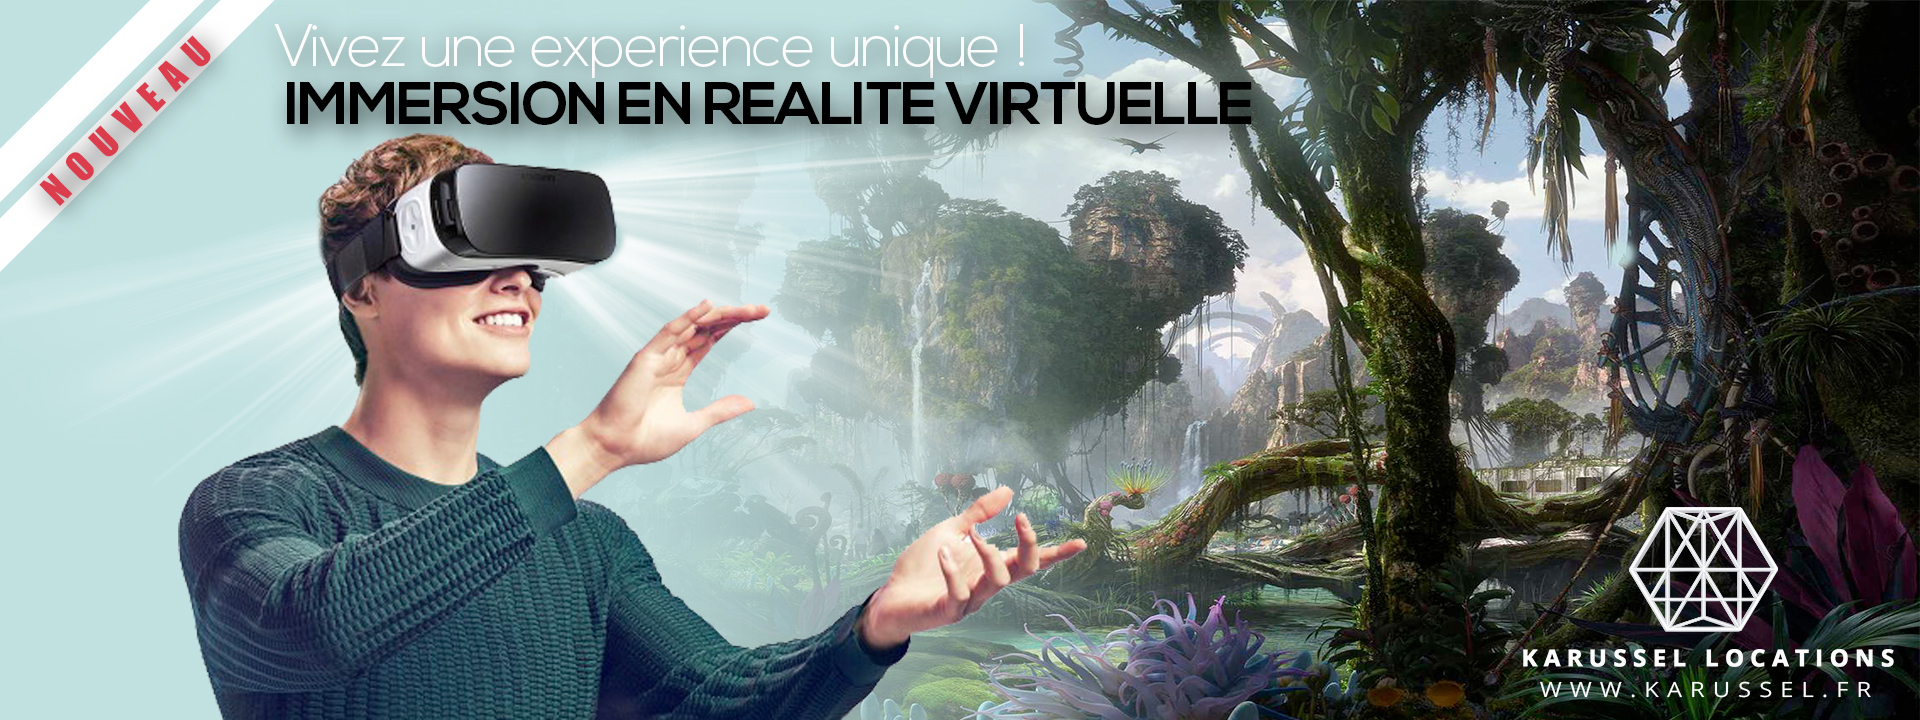 Immersion réalité virtuelle